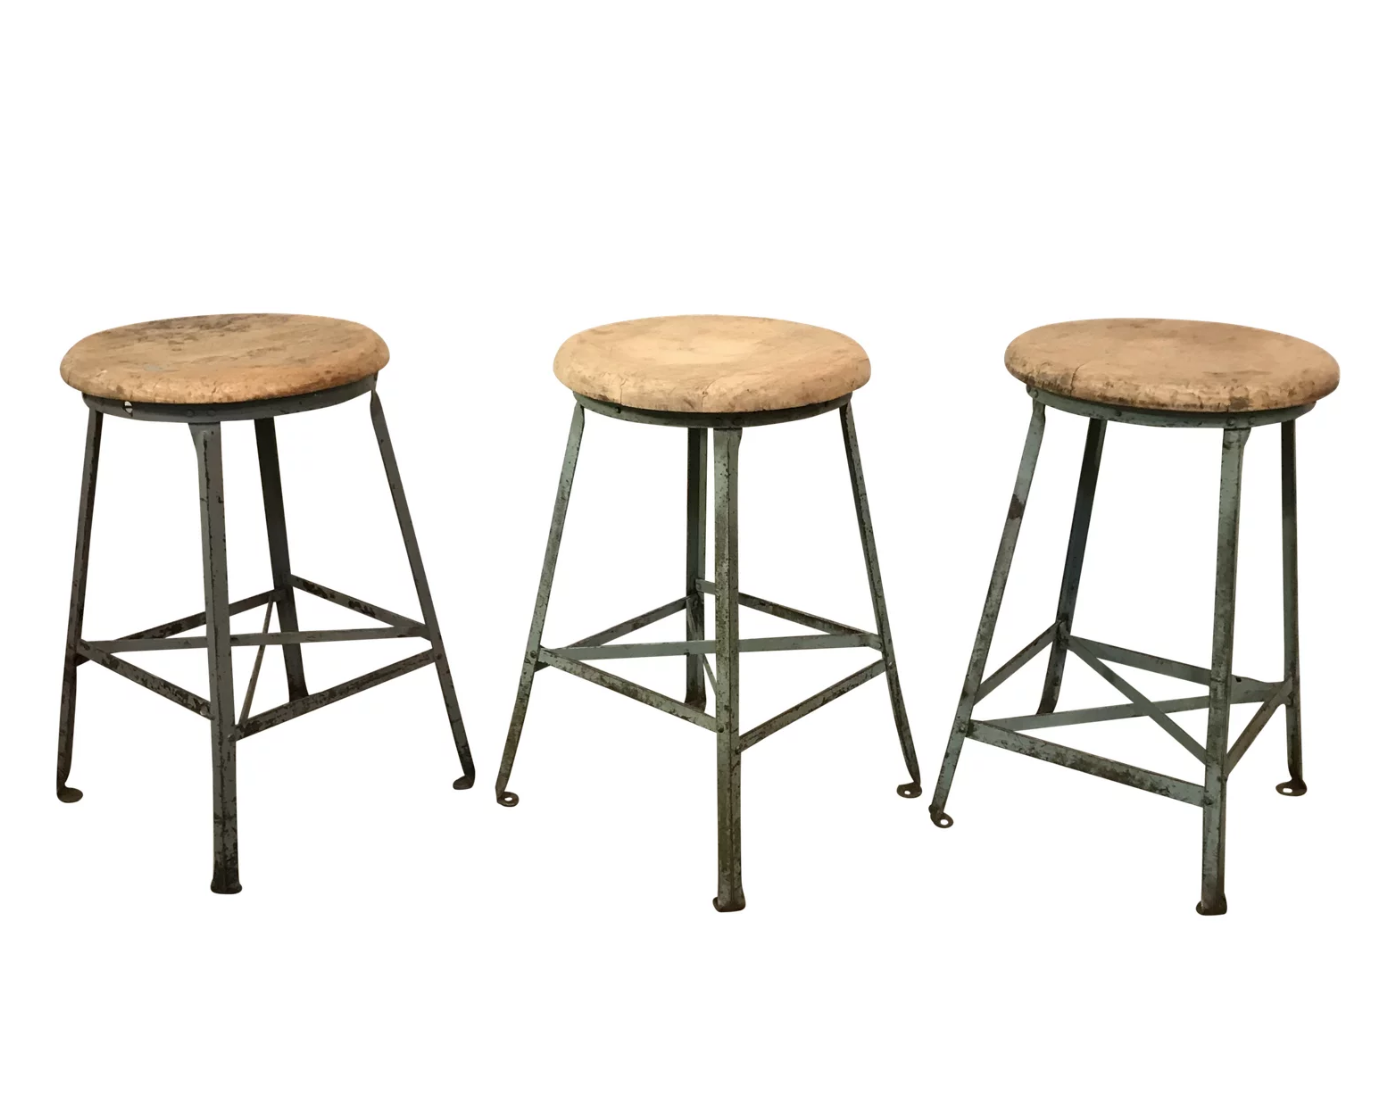 Set of 3 Industrial Farmhouse Wooden Top Metal Stools $395